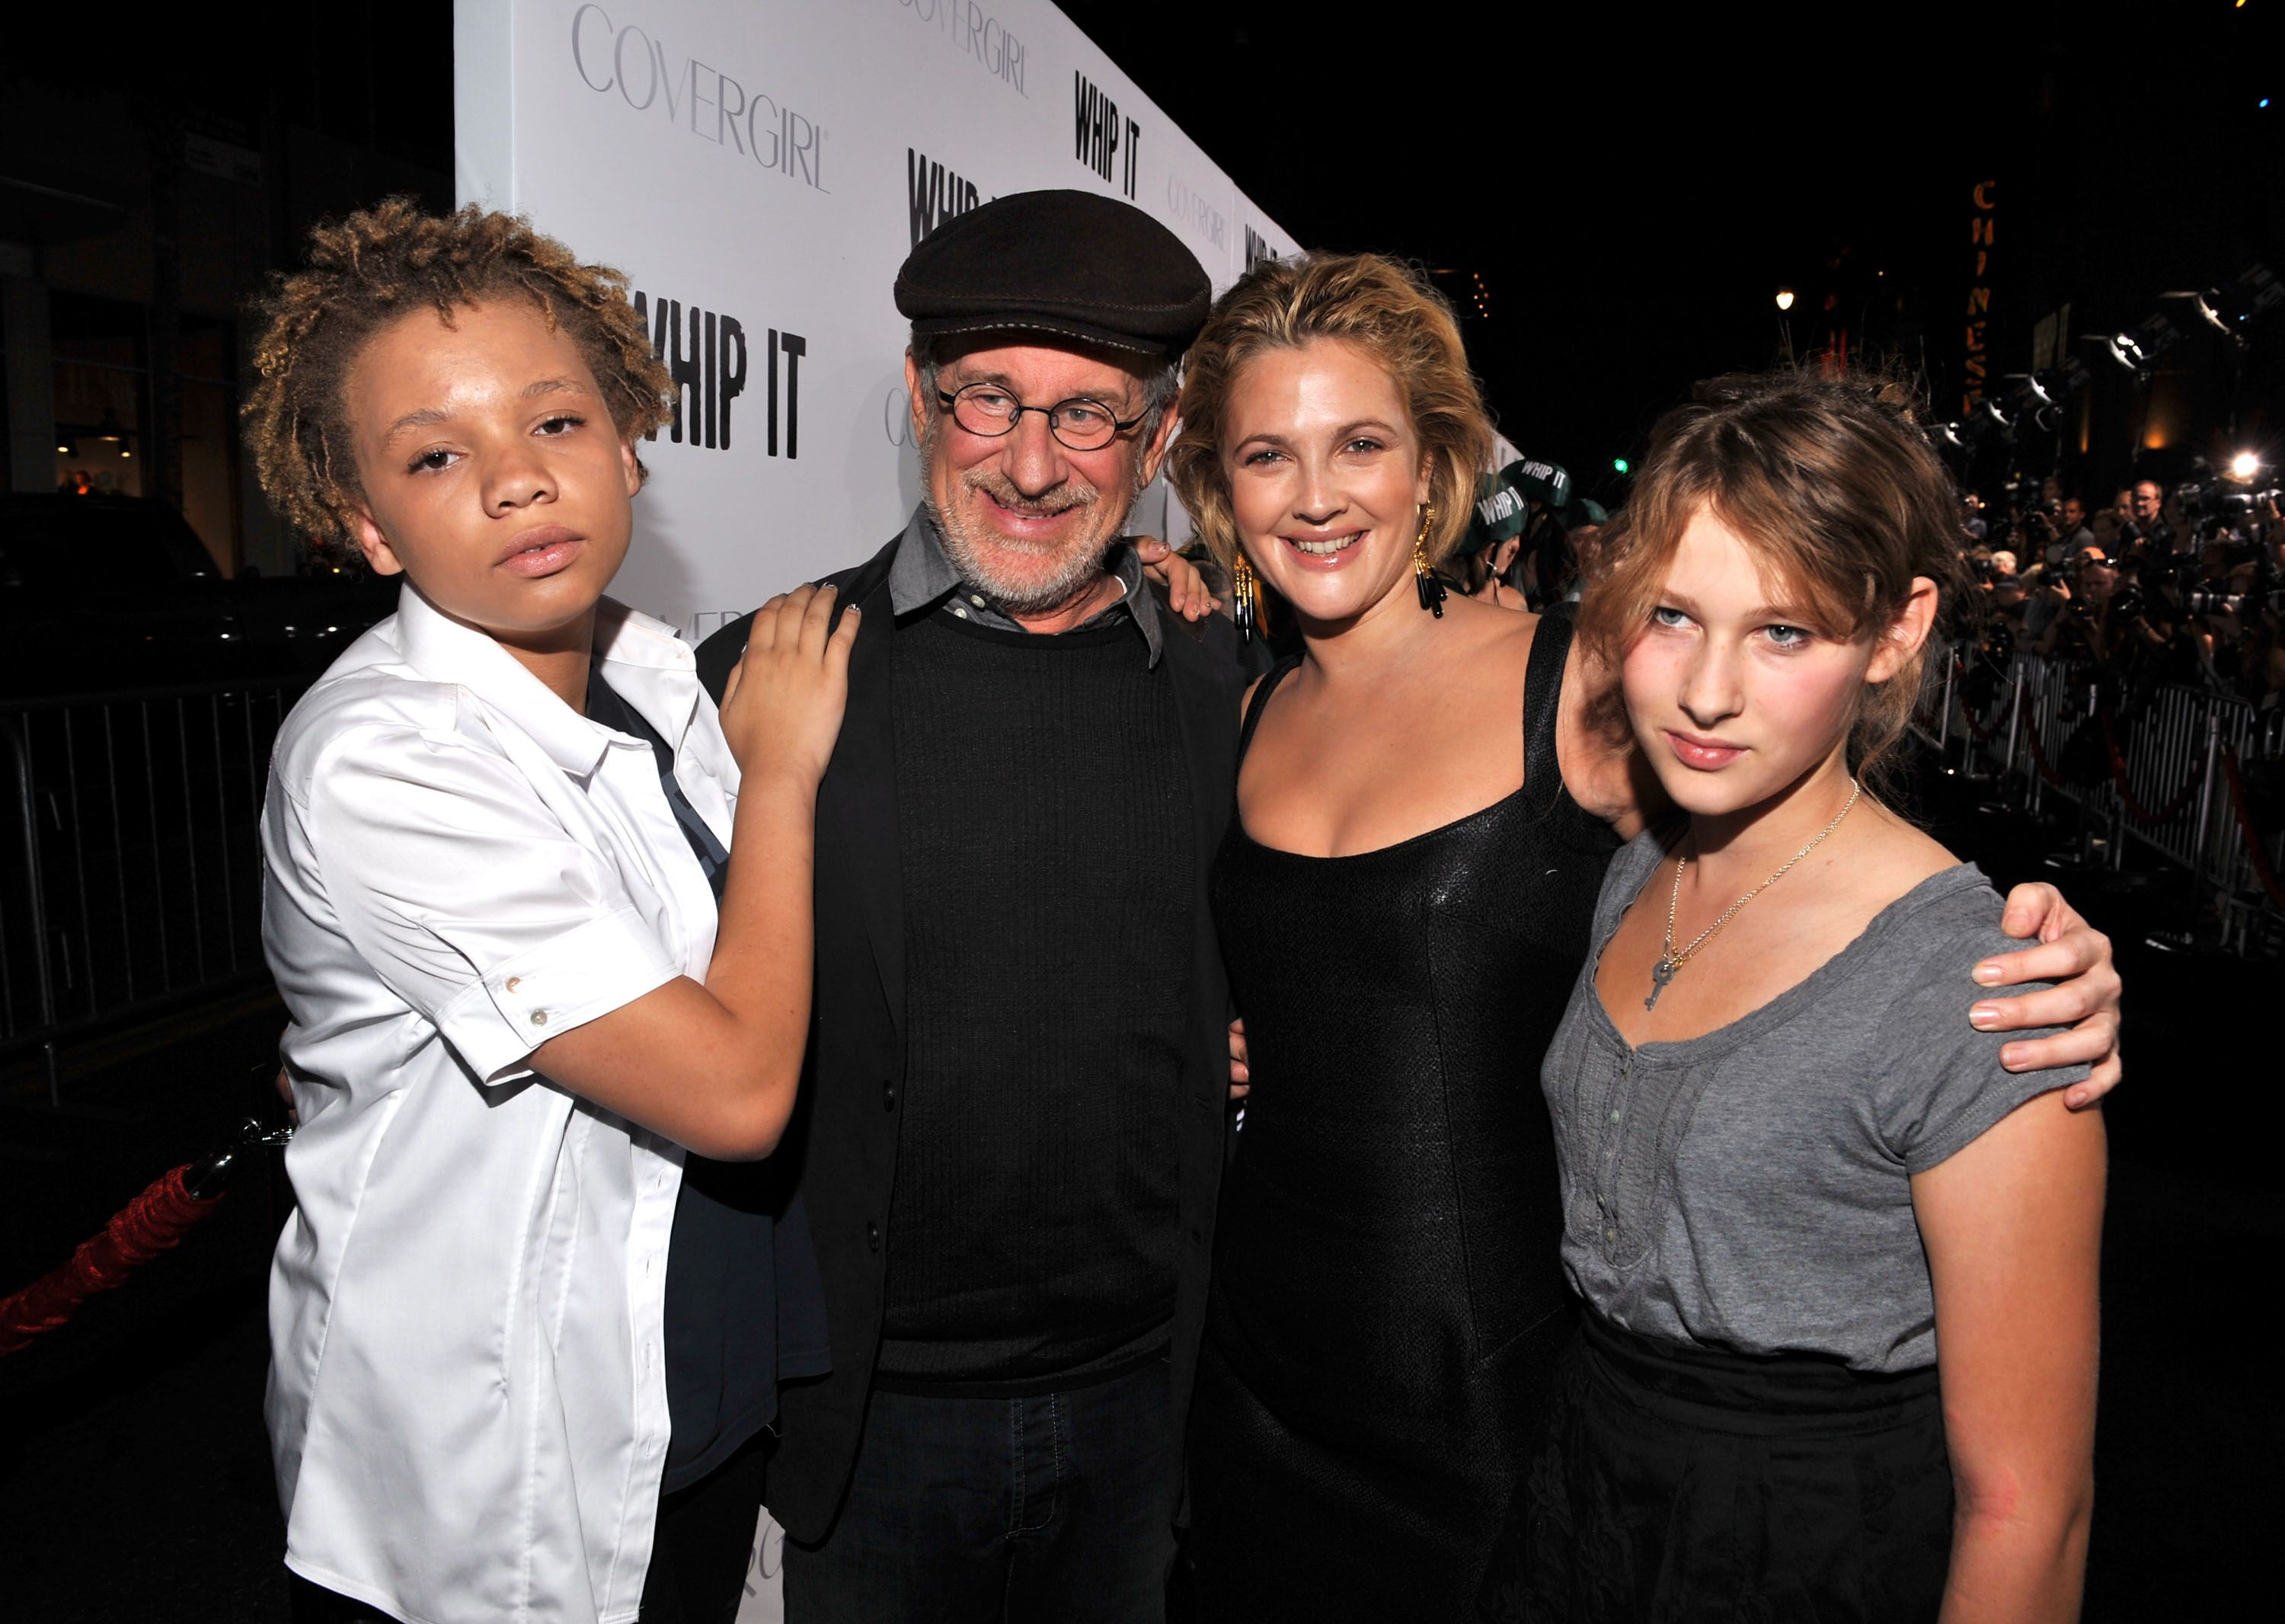 Two of Steven Spielberg's daughters and actress Drew Barrymore